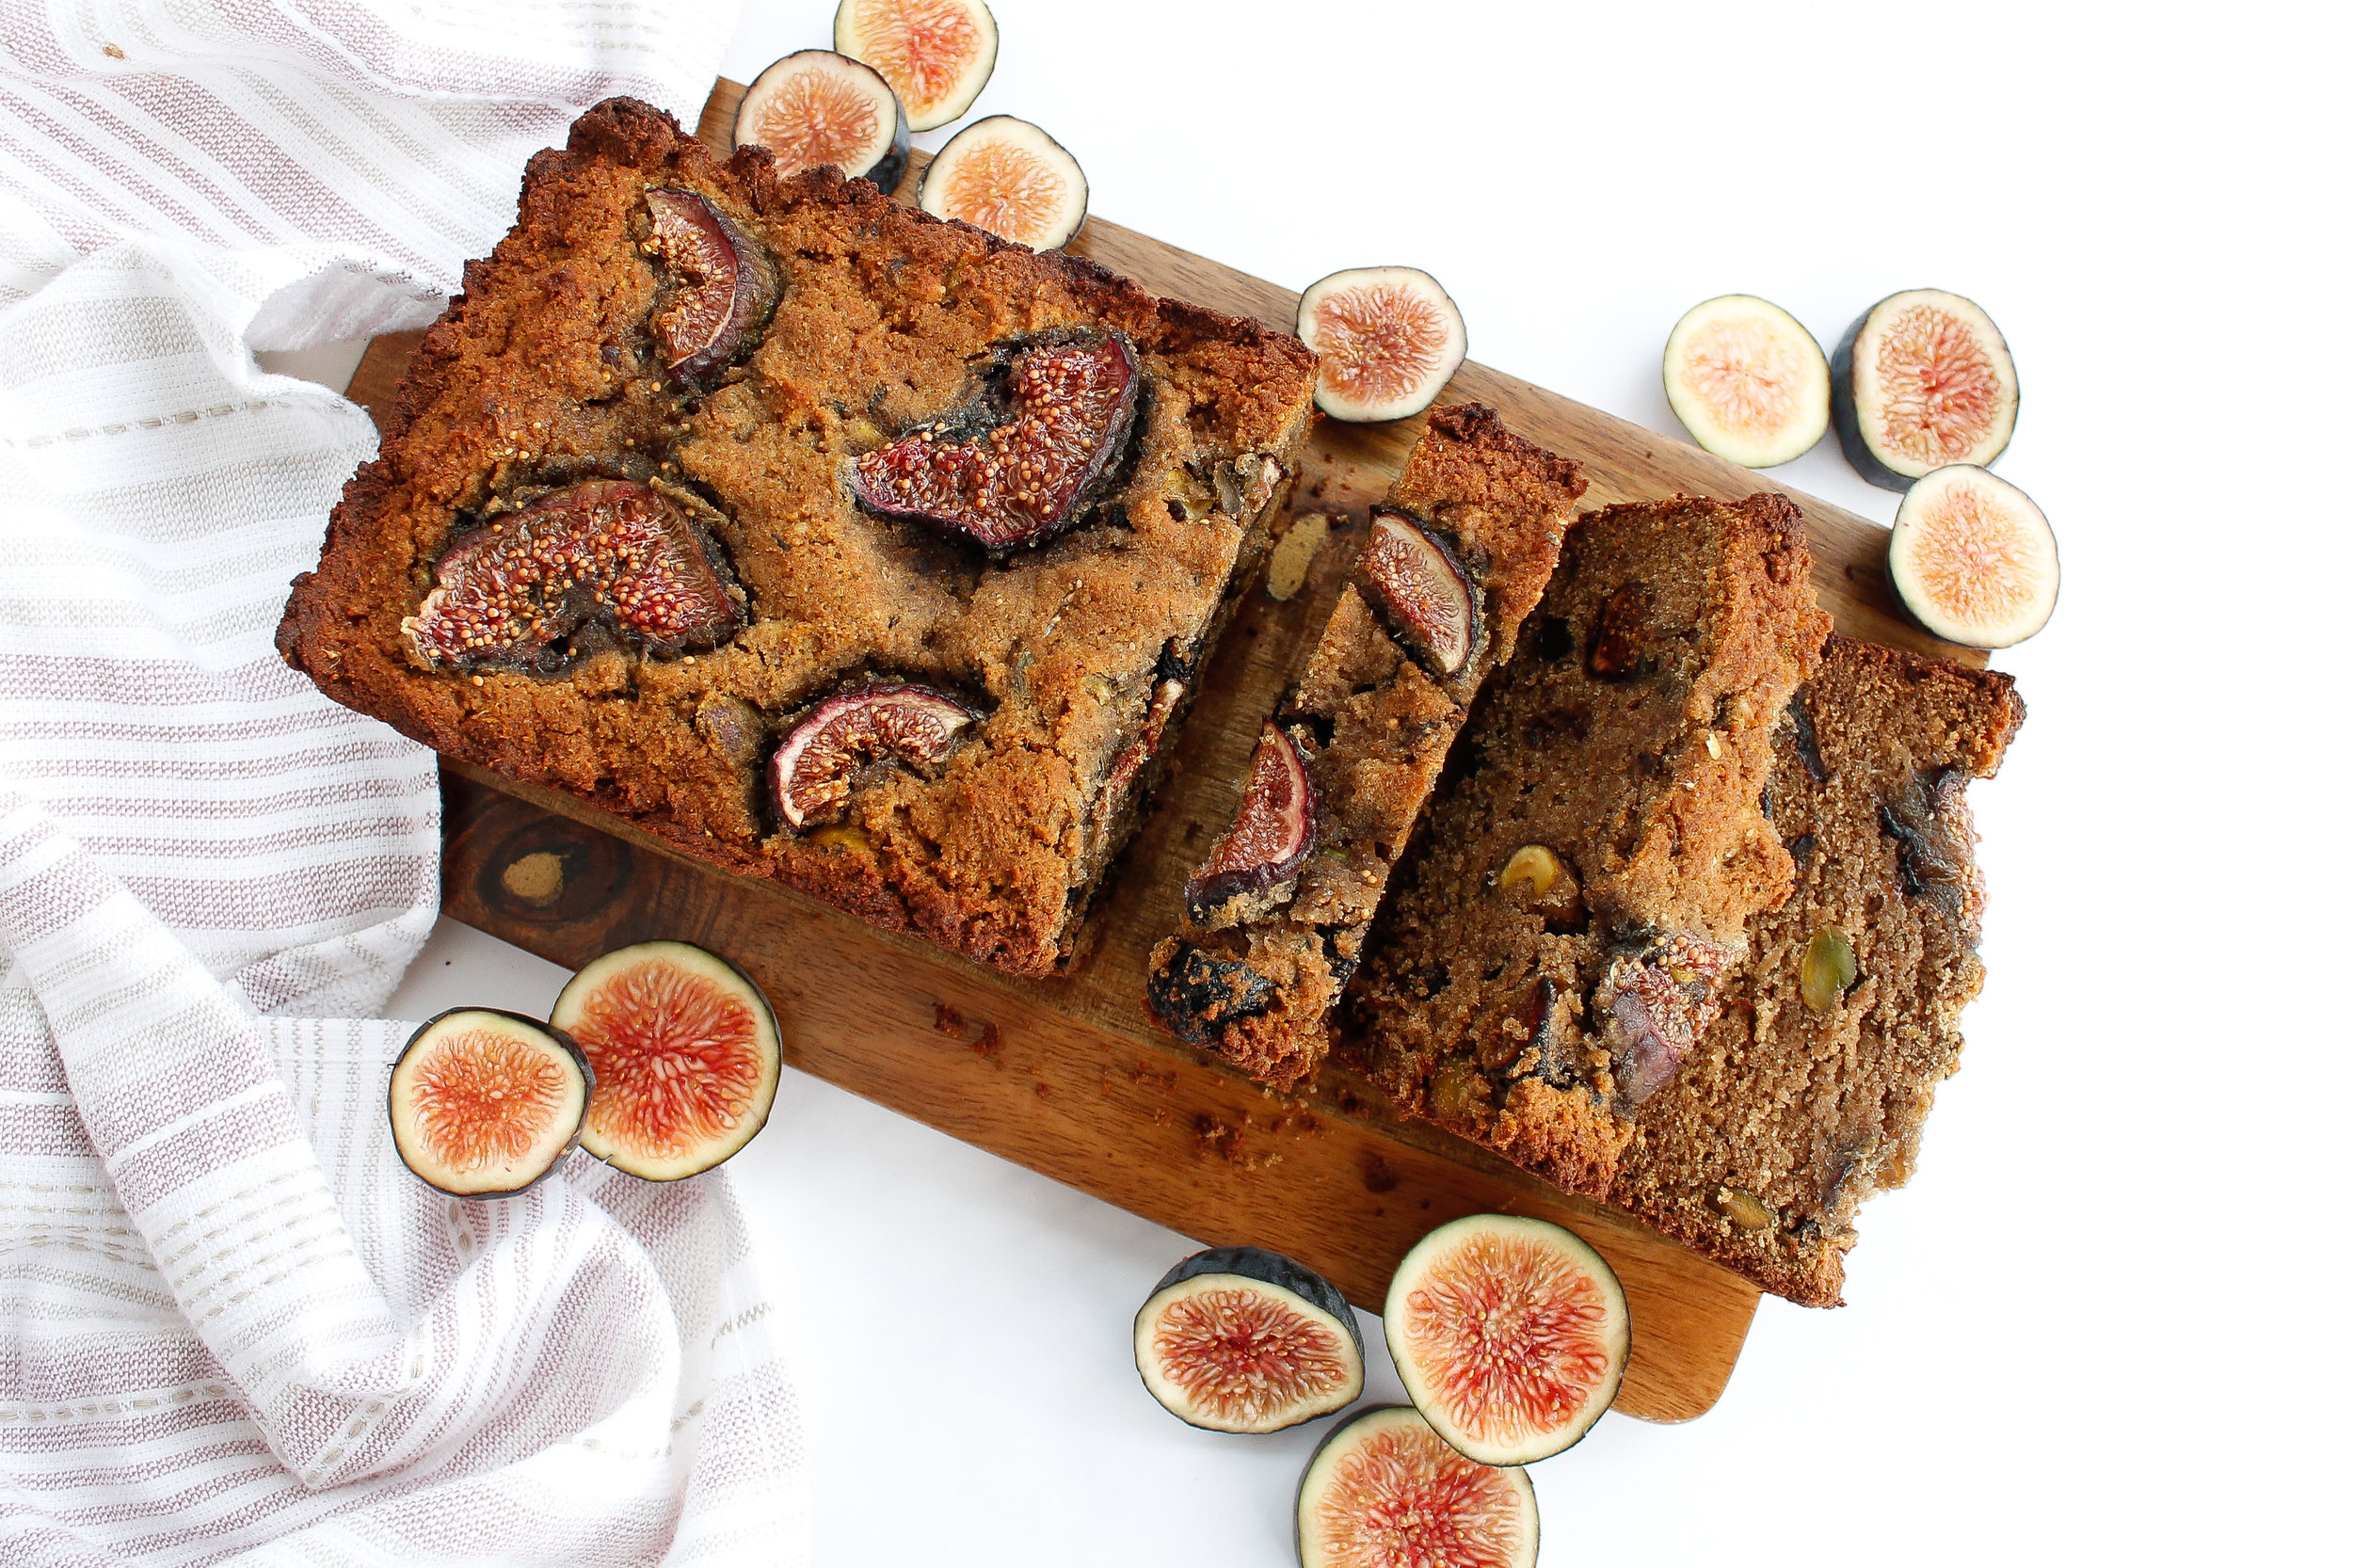 Paleo pistachio fig newton bread makes for the perfect healthy dessert, healthy snack or healthy breakfast! This allergy friendly bread is grain free gluten free, dairy free and Specific Carbohydrate Diet friendly. It is also refined sugar free, making it a healthy option for that sweet tooth. #paleobaking #specificcarbohydratediet #paleo